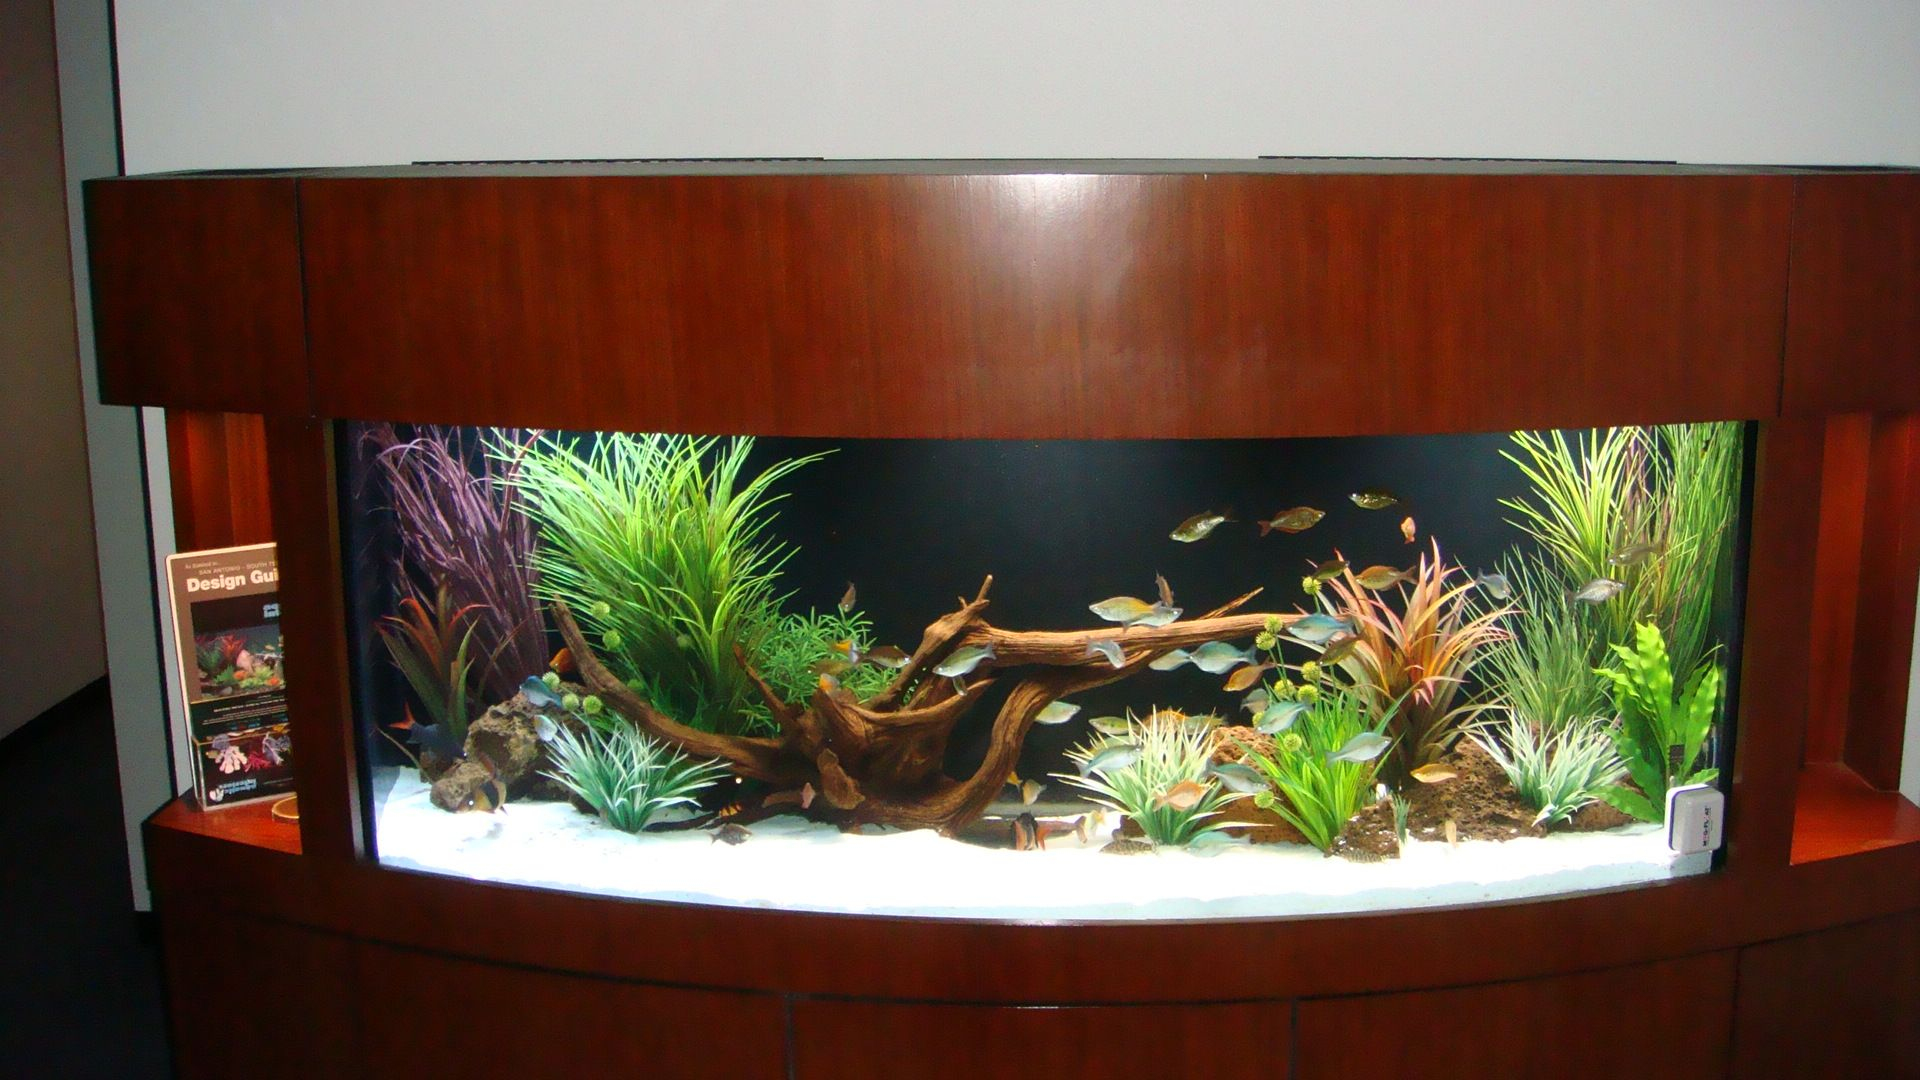 transform the way your home looks using a fish tank fish tank decoration ideas fish tanks and